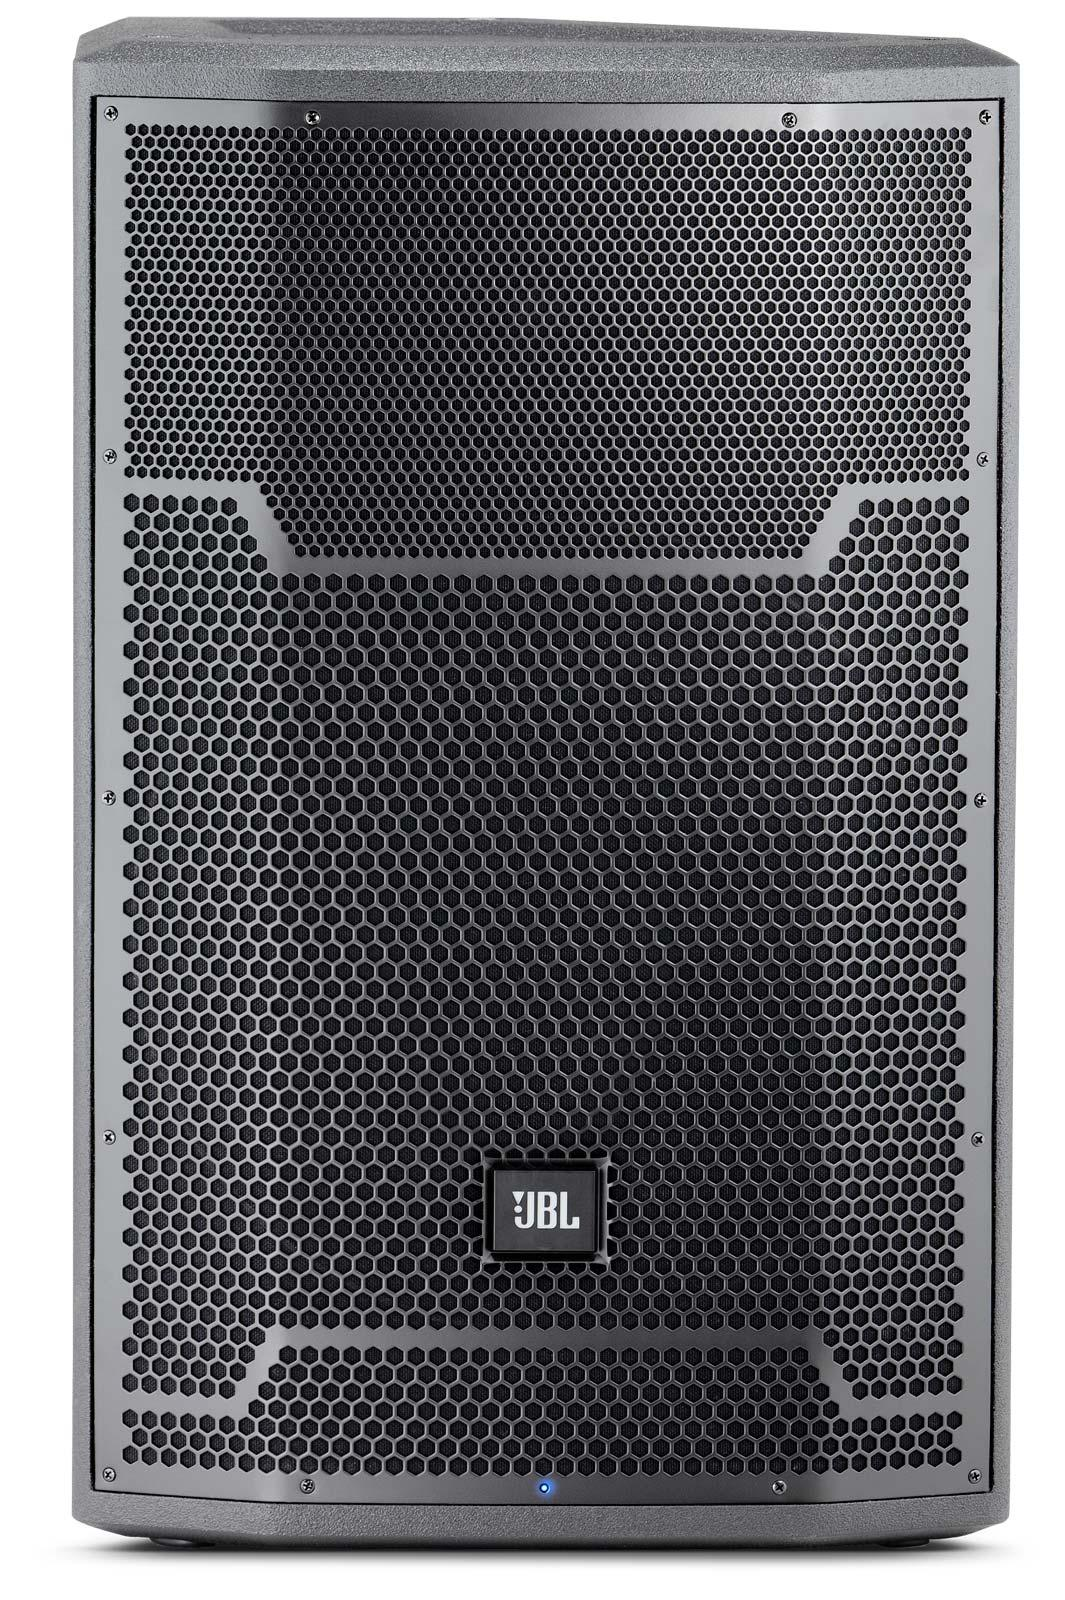 Jbl Prx715 15 Inch 2 Way Powered Active Speaker Agiprodj